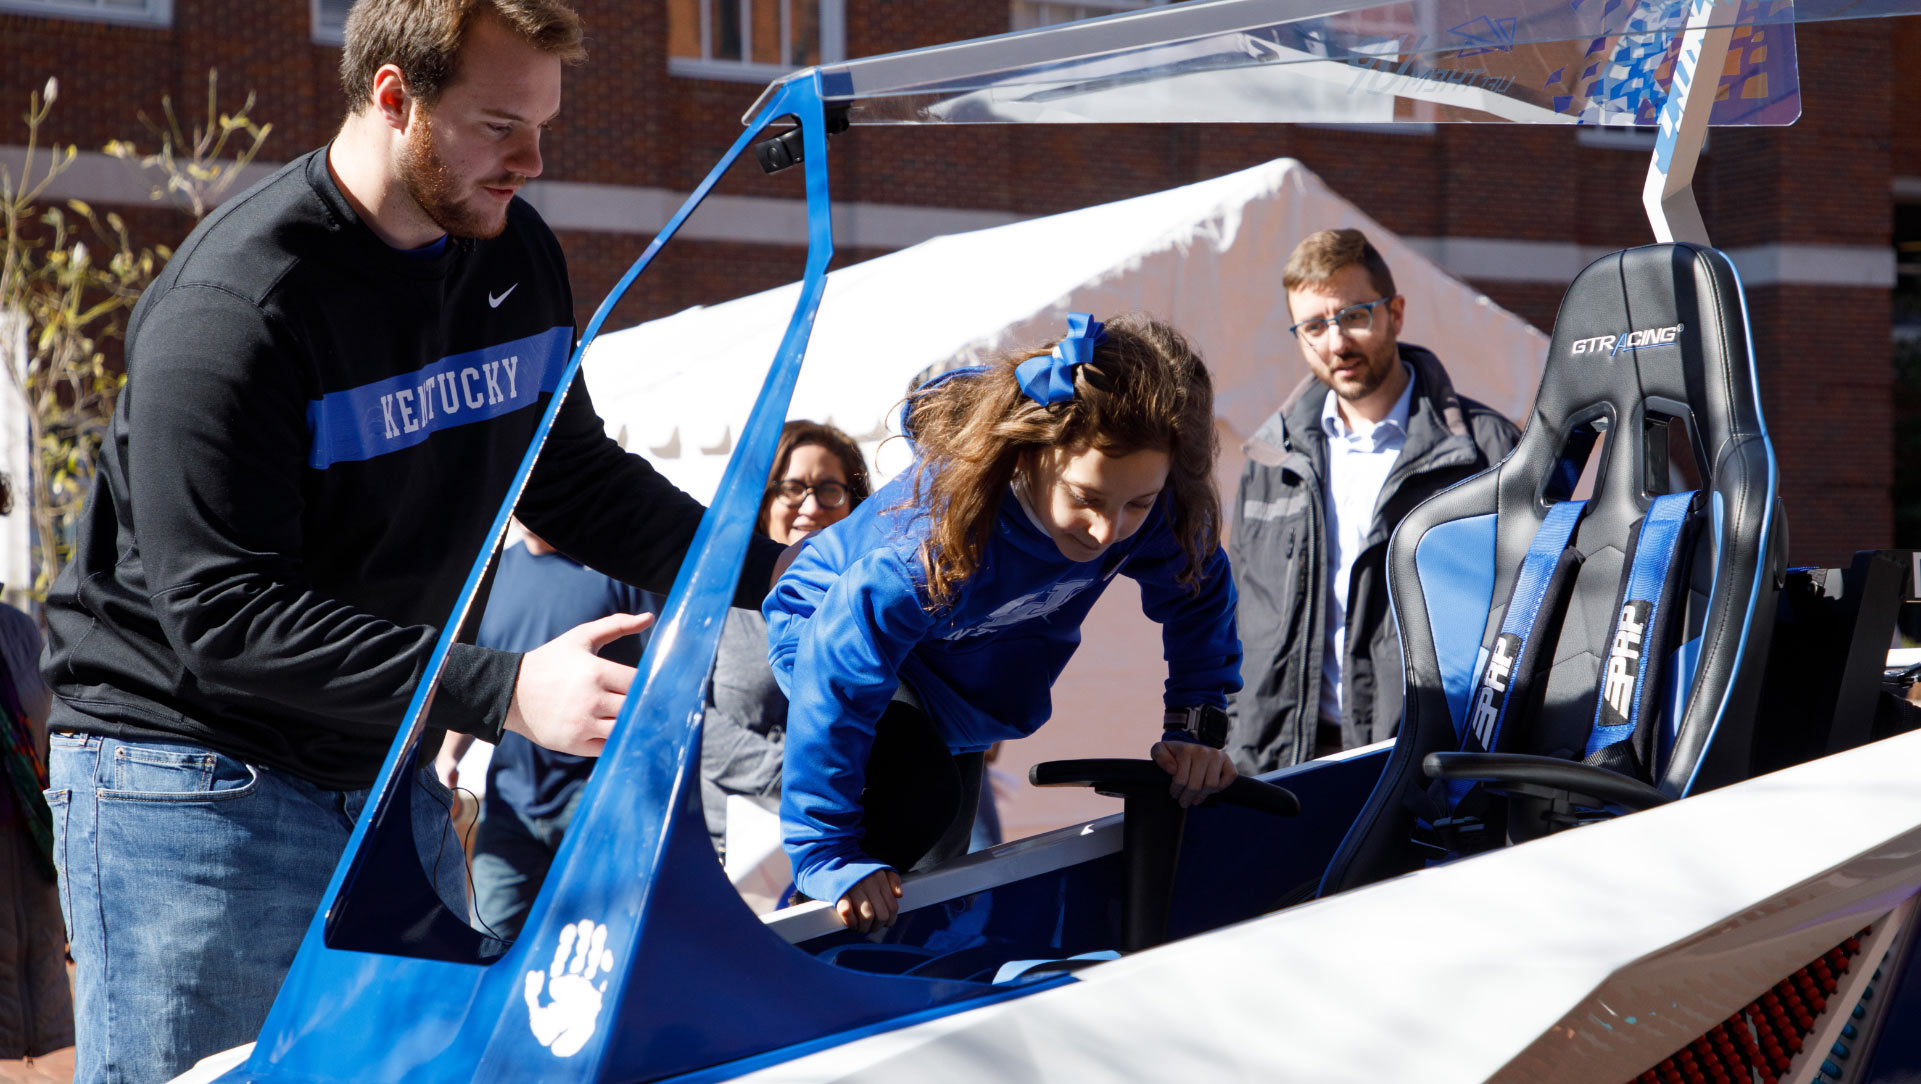 Luke Fortner, a young white man with a football player's build, brown hair, and a brown beard, helps a young girl into the cart. She is wearing UK blue and has a bow in her hair.